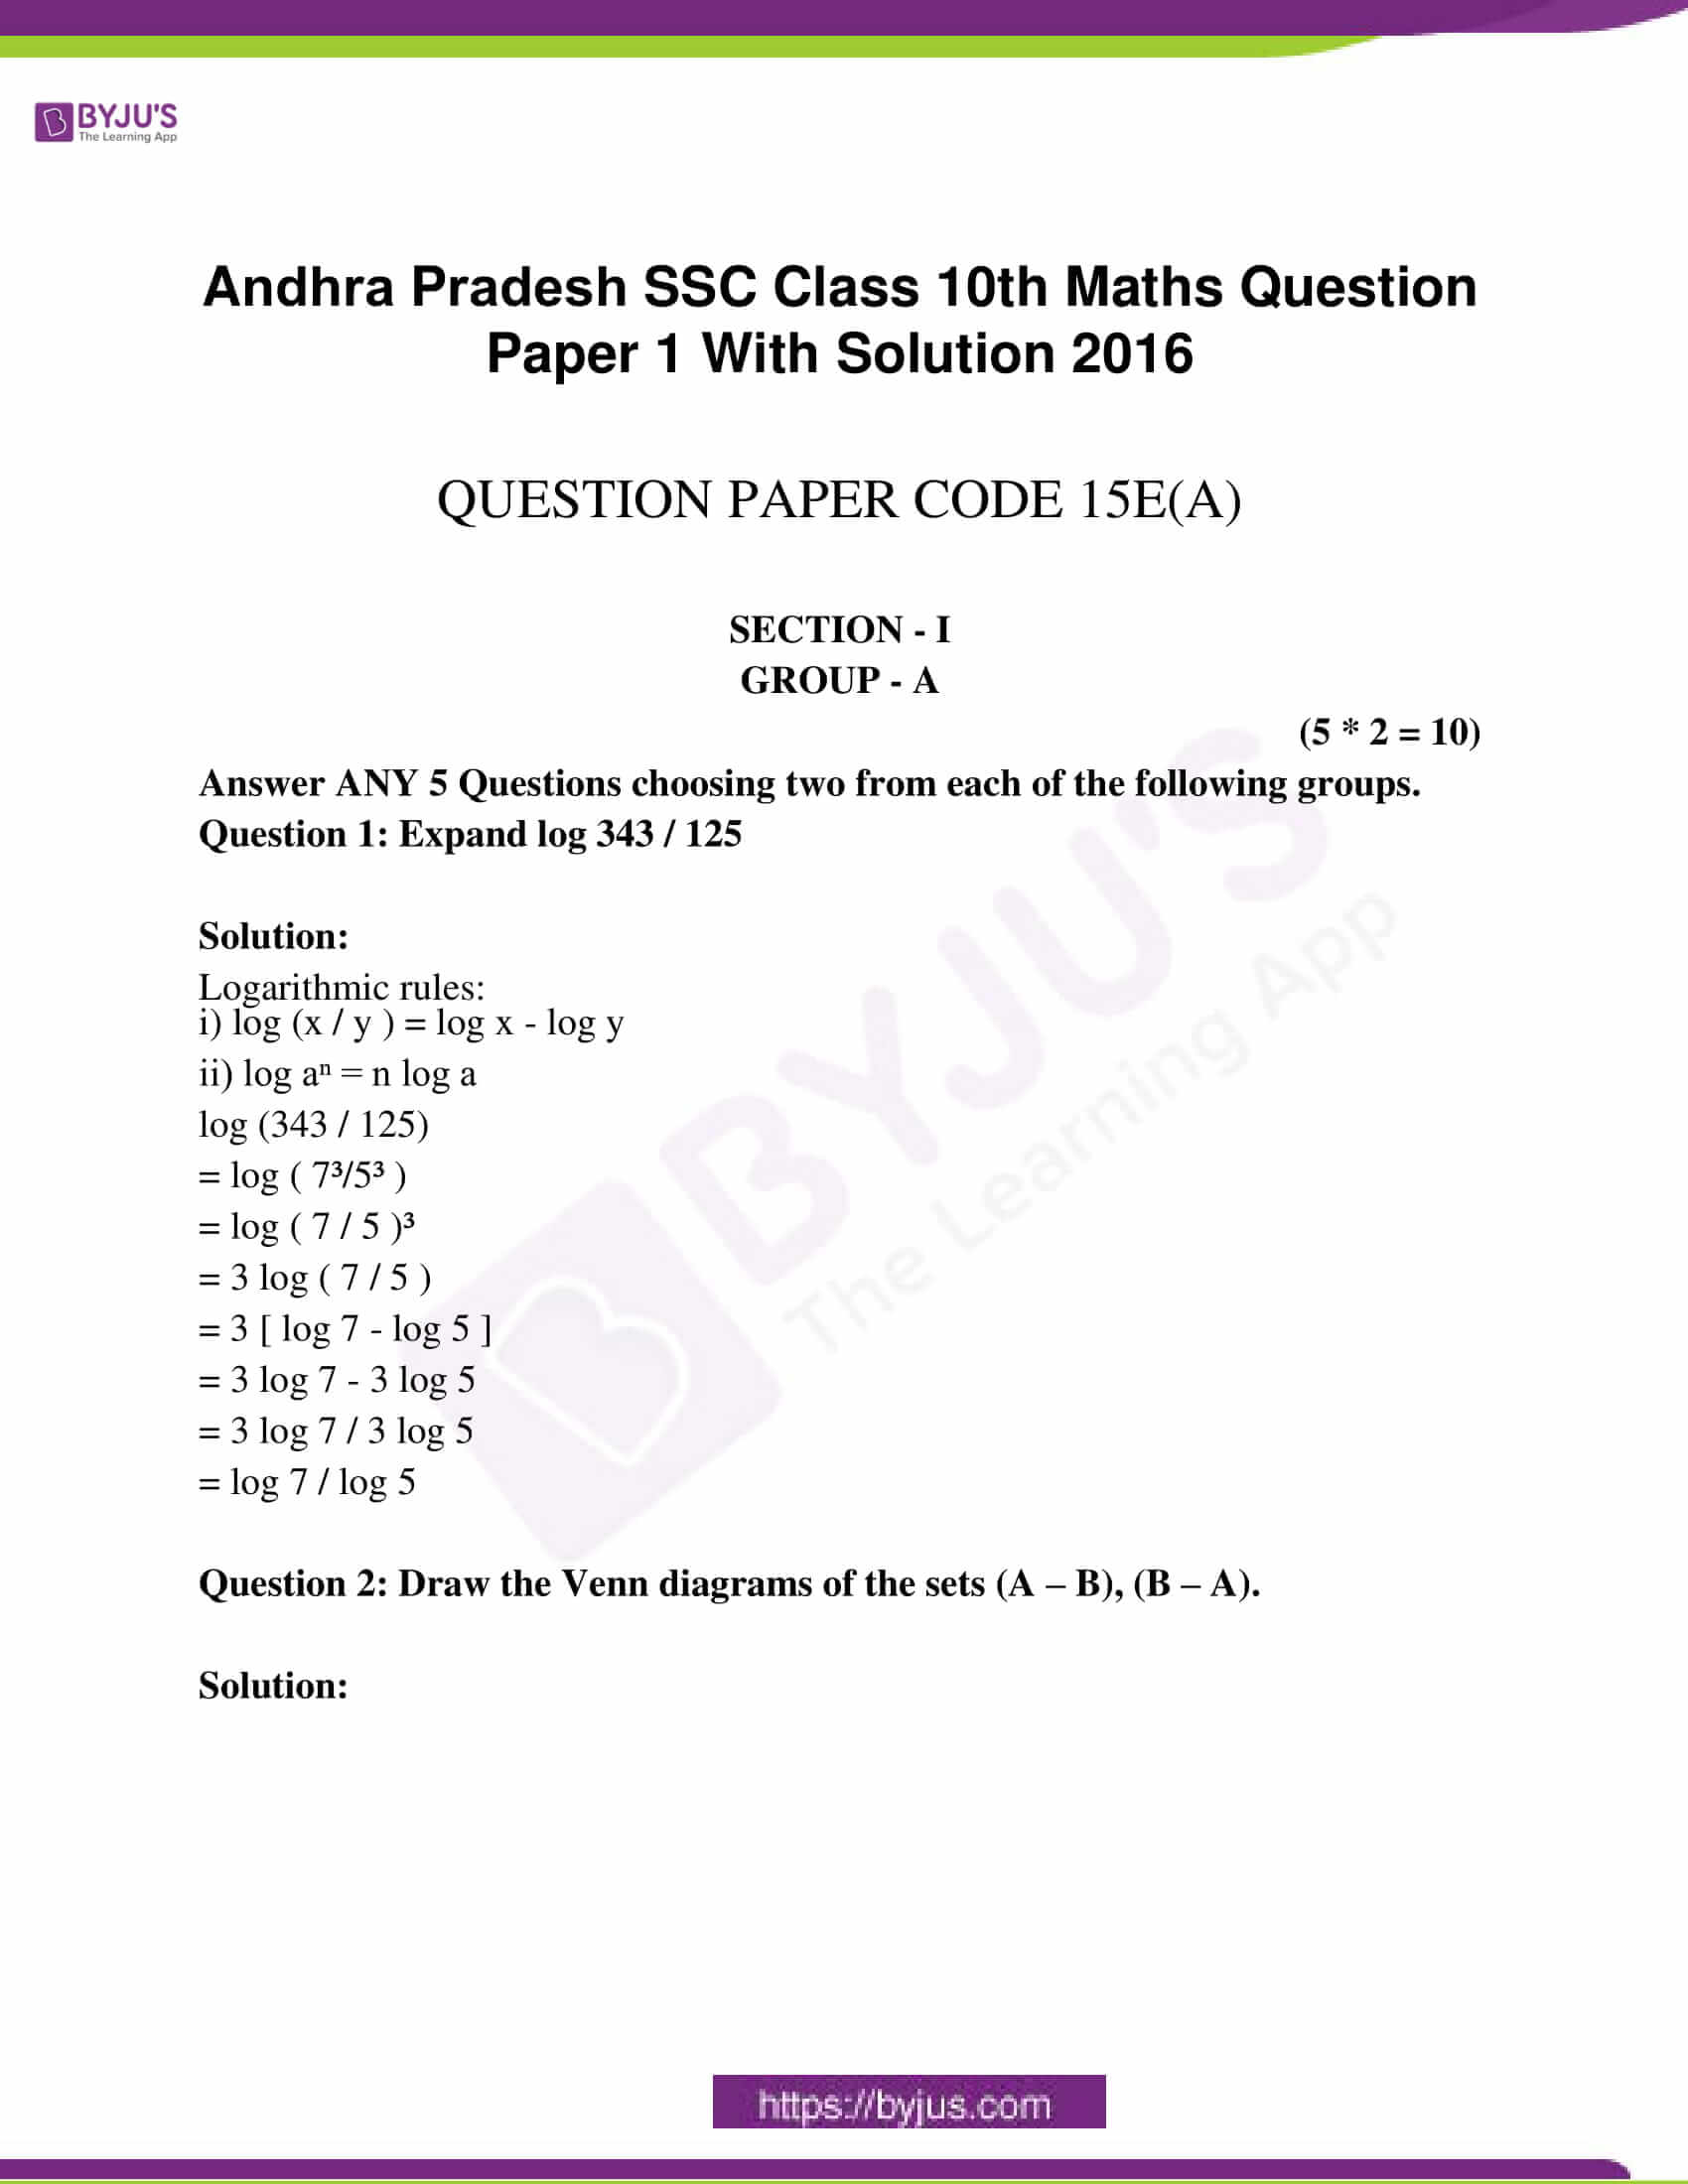 ap class 10 maths question paper 1 sol march 2016 01